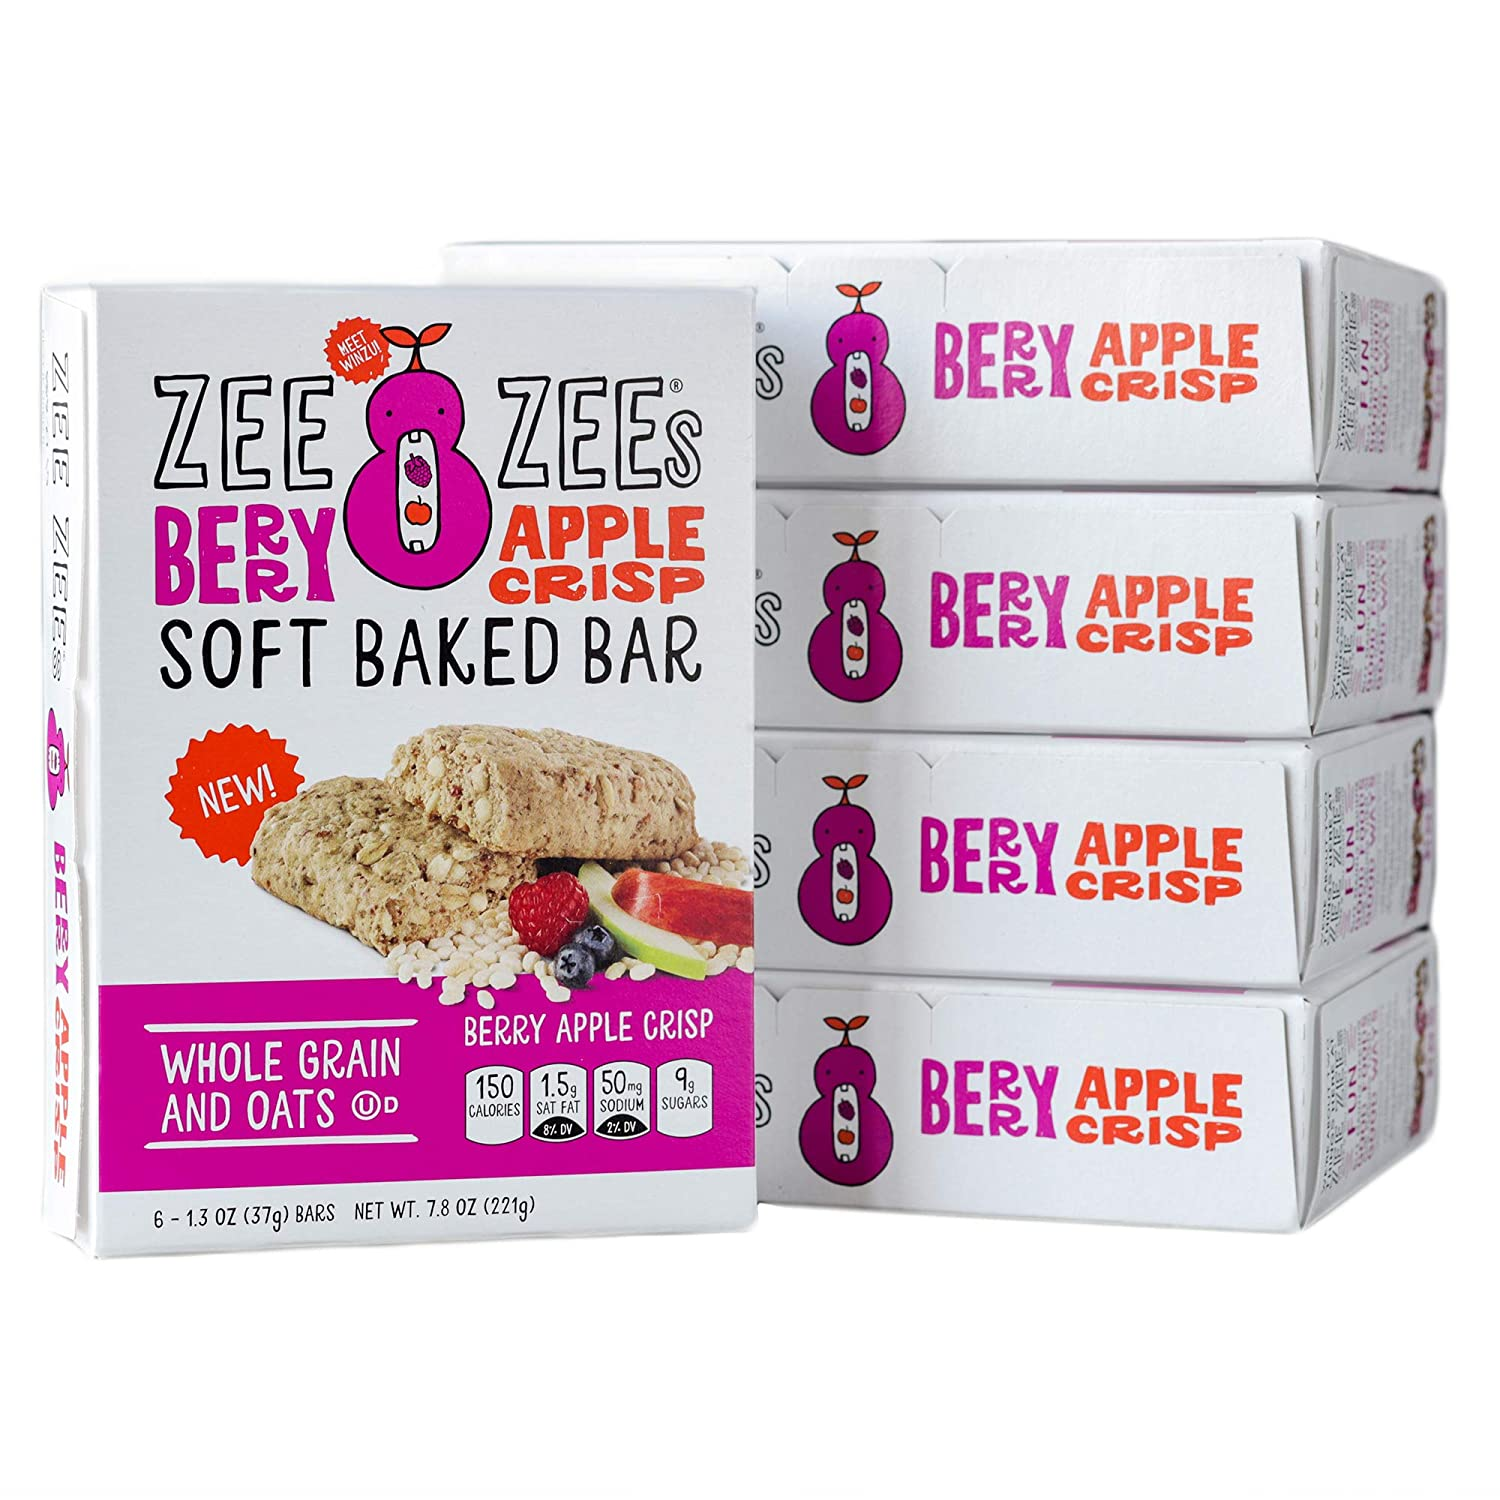 Zee Zees Berry Apple Crisp Soft Baked Snack Bars, Nut-Free, Whole Grain, Naturally Flavored, 1.3 oz, 30 pack …